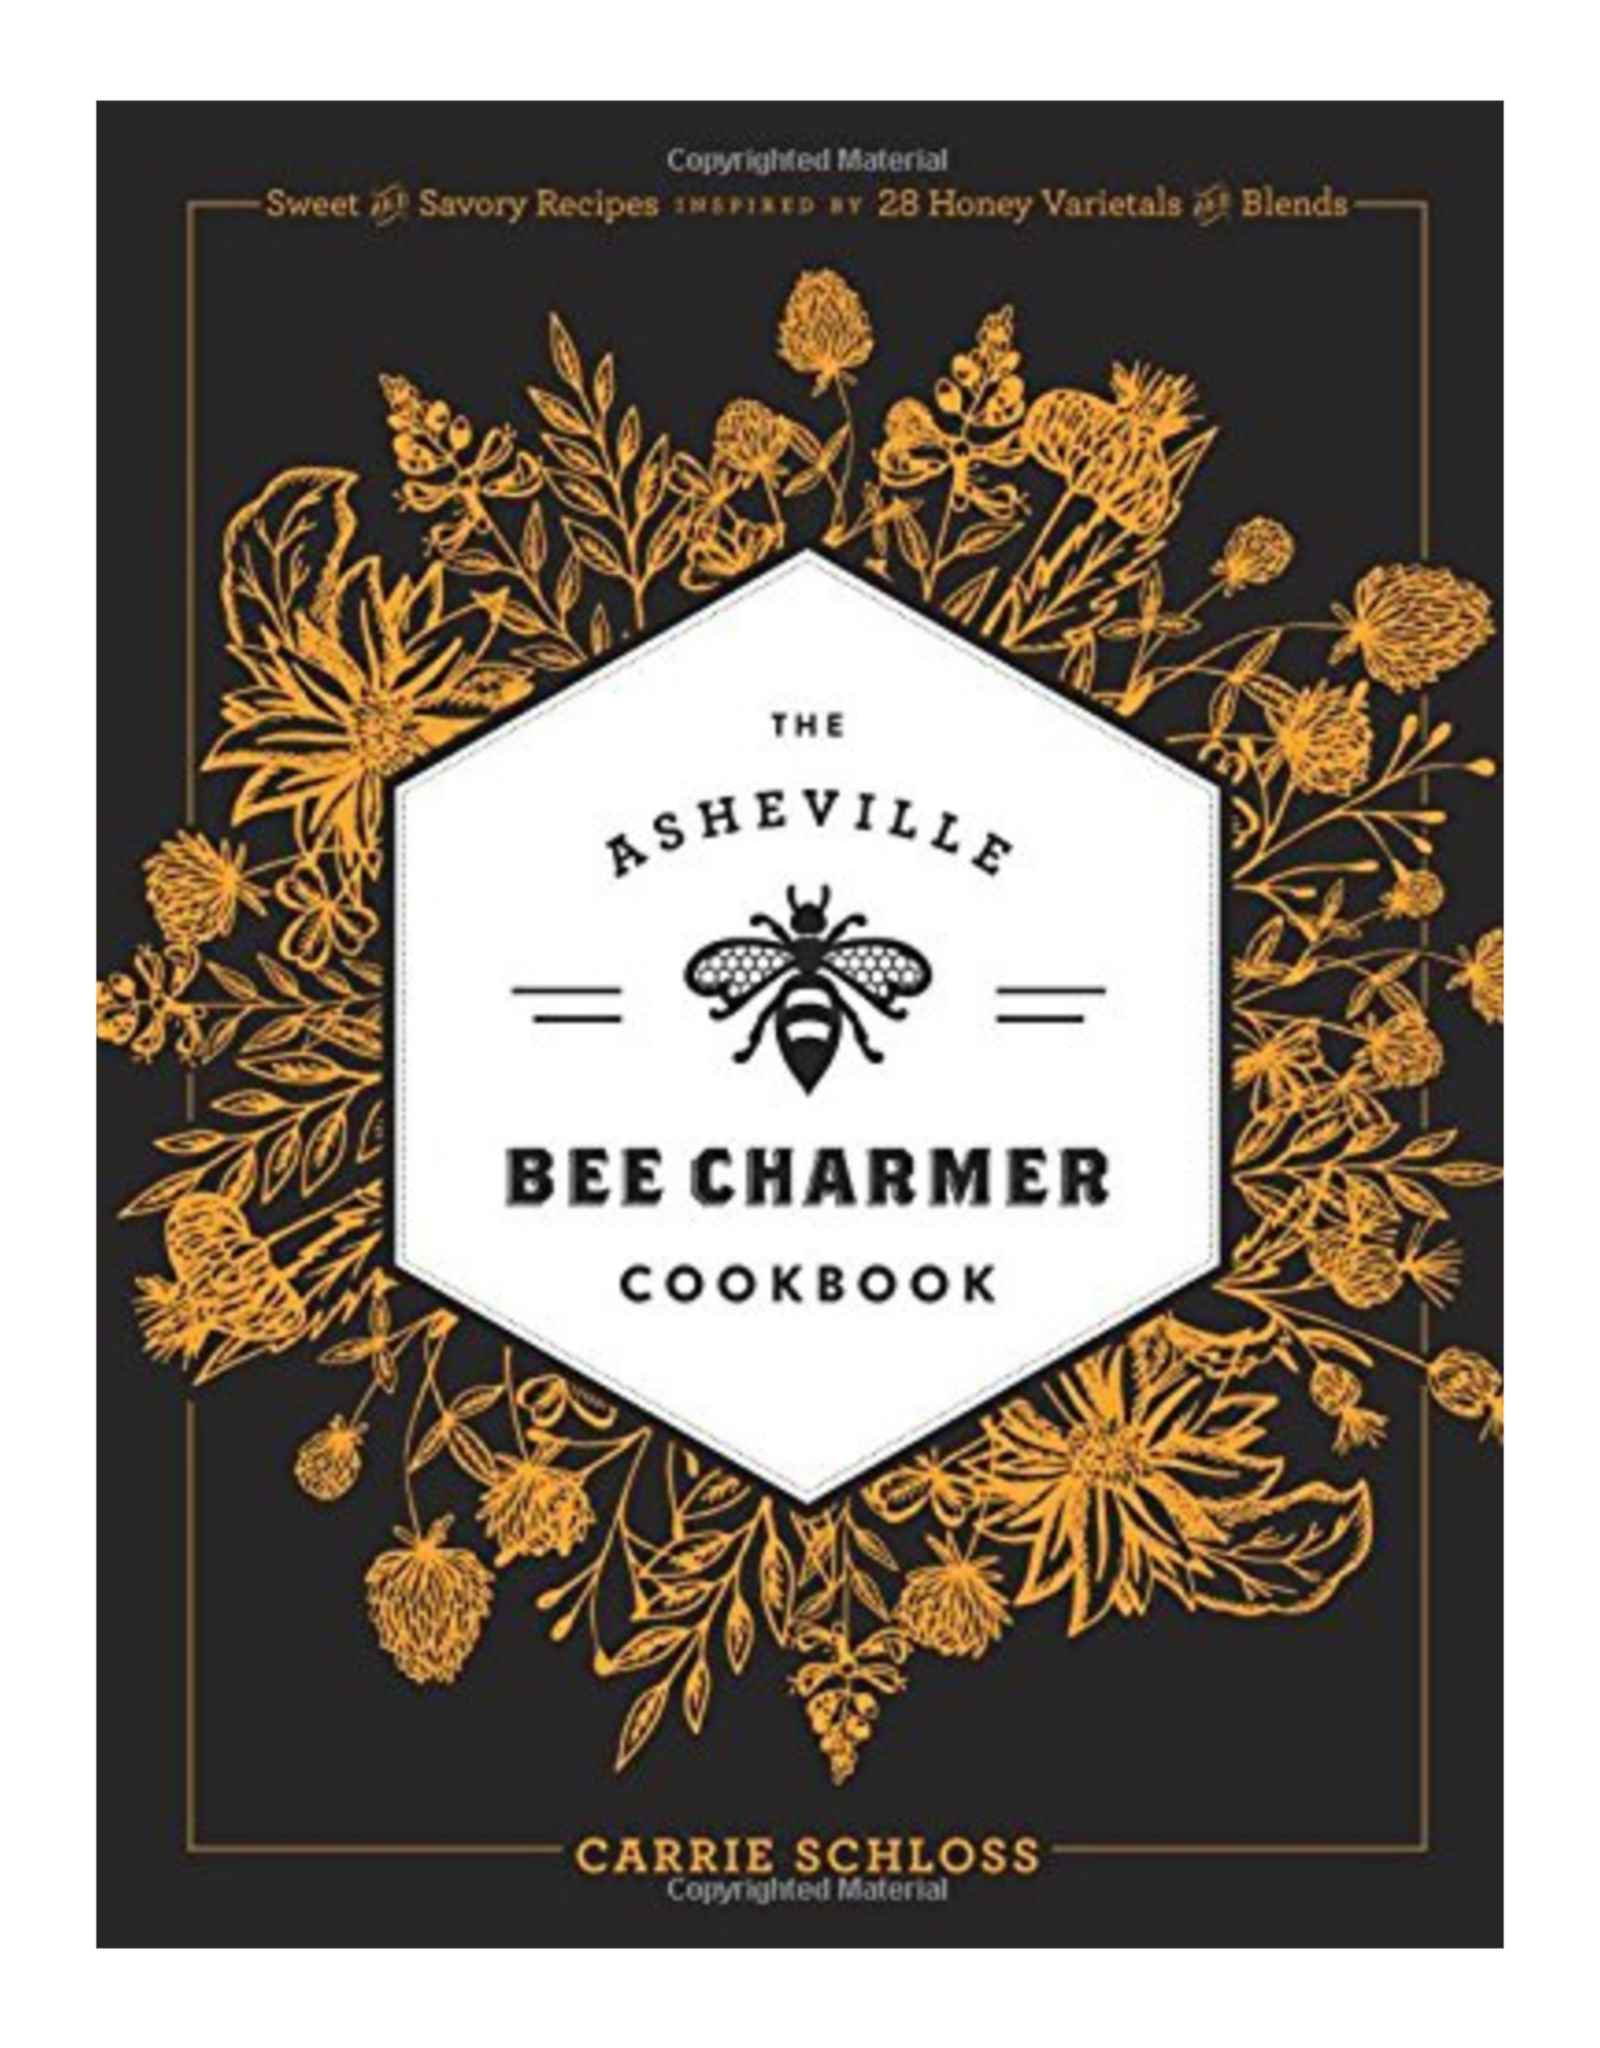 The Asheville Beecharmer Cookbook